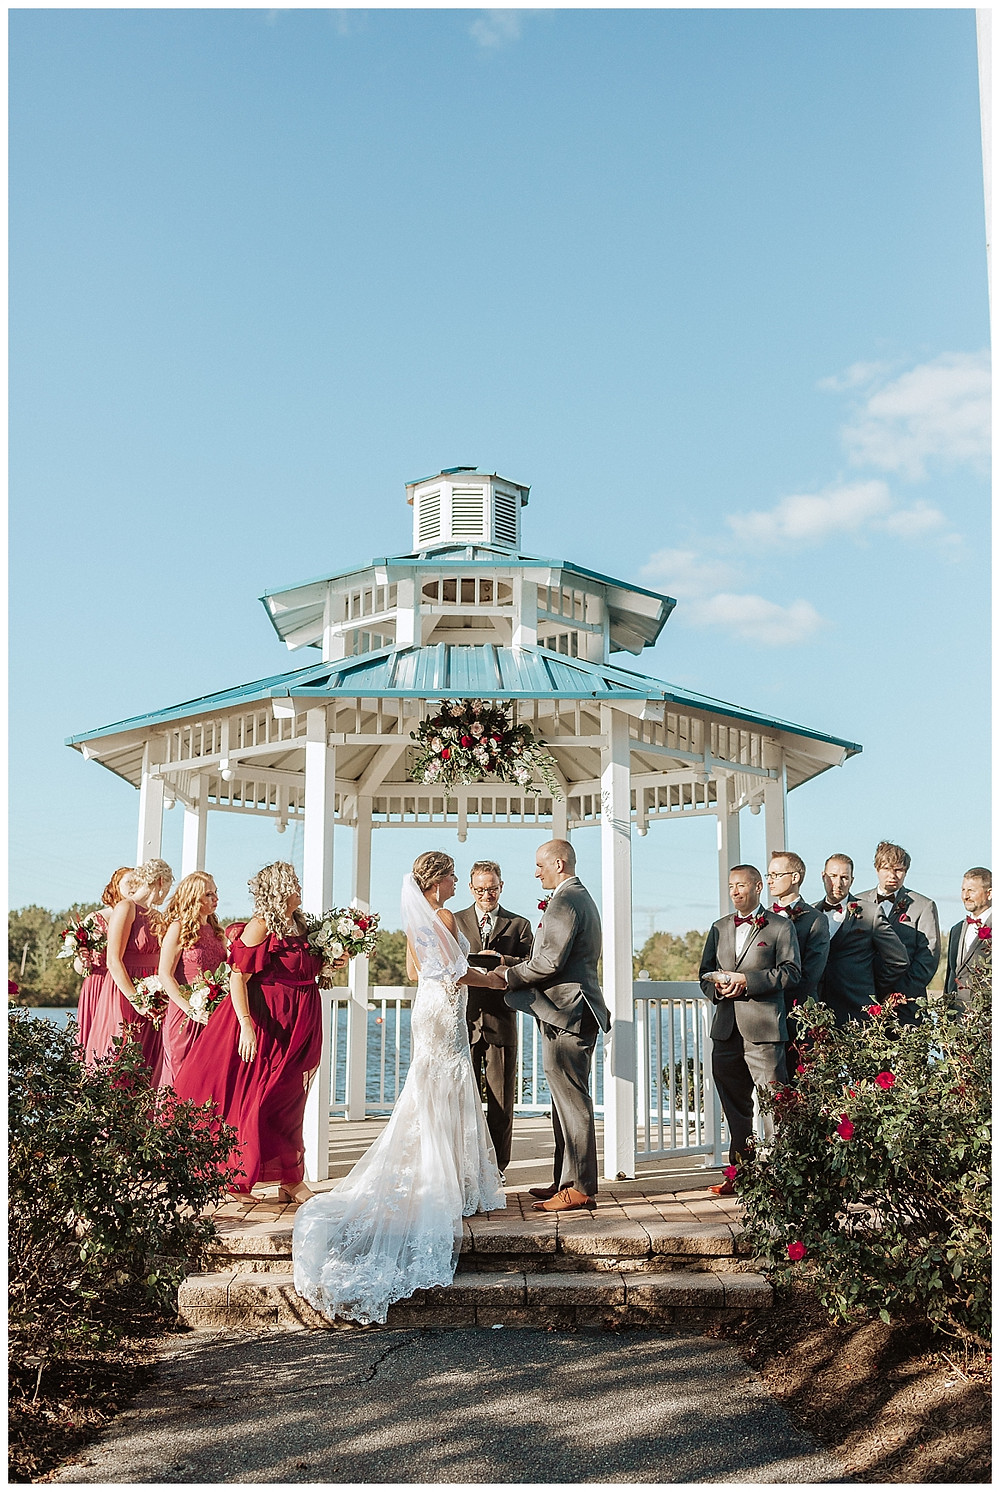 Lakeside Wedding Ceremony in Gazebo